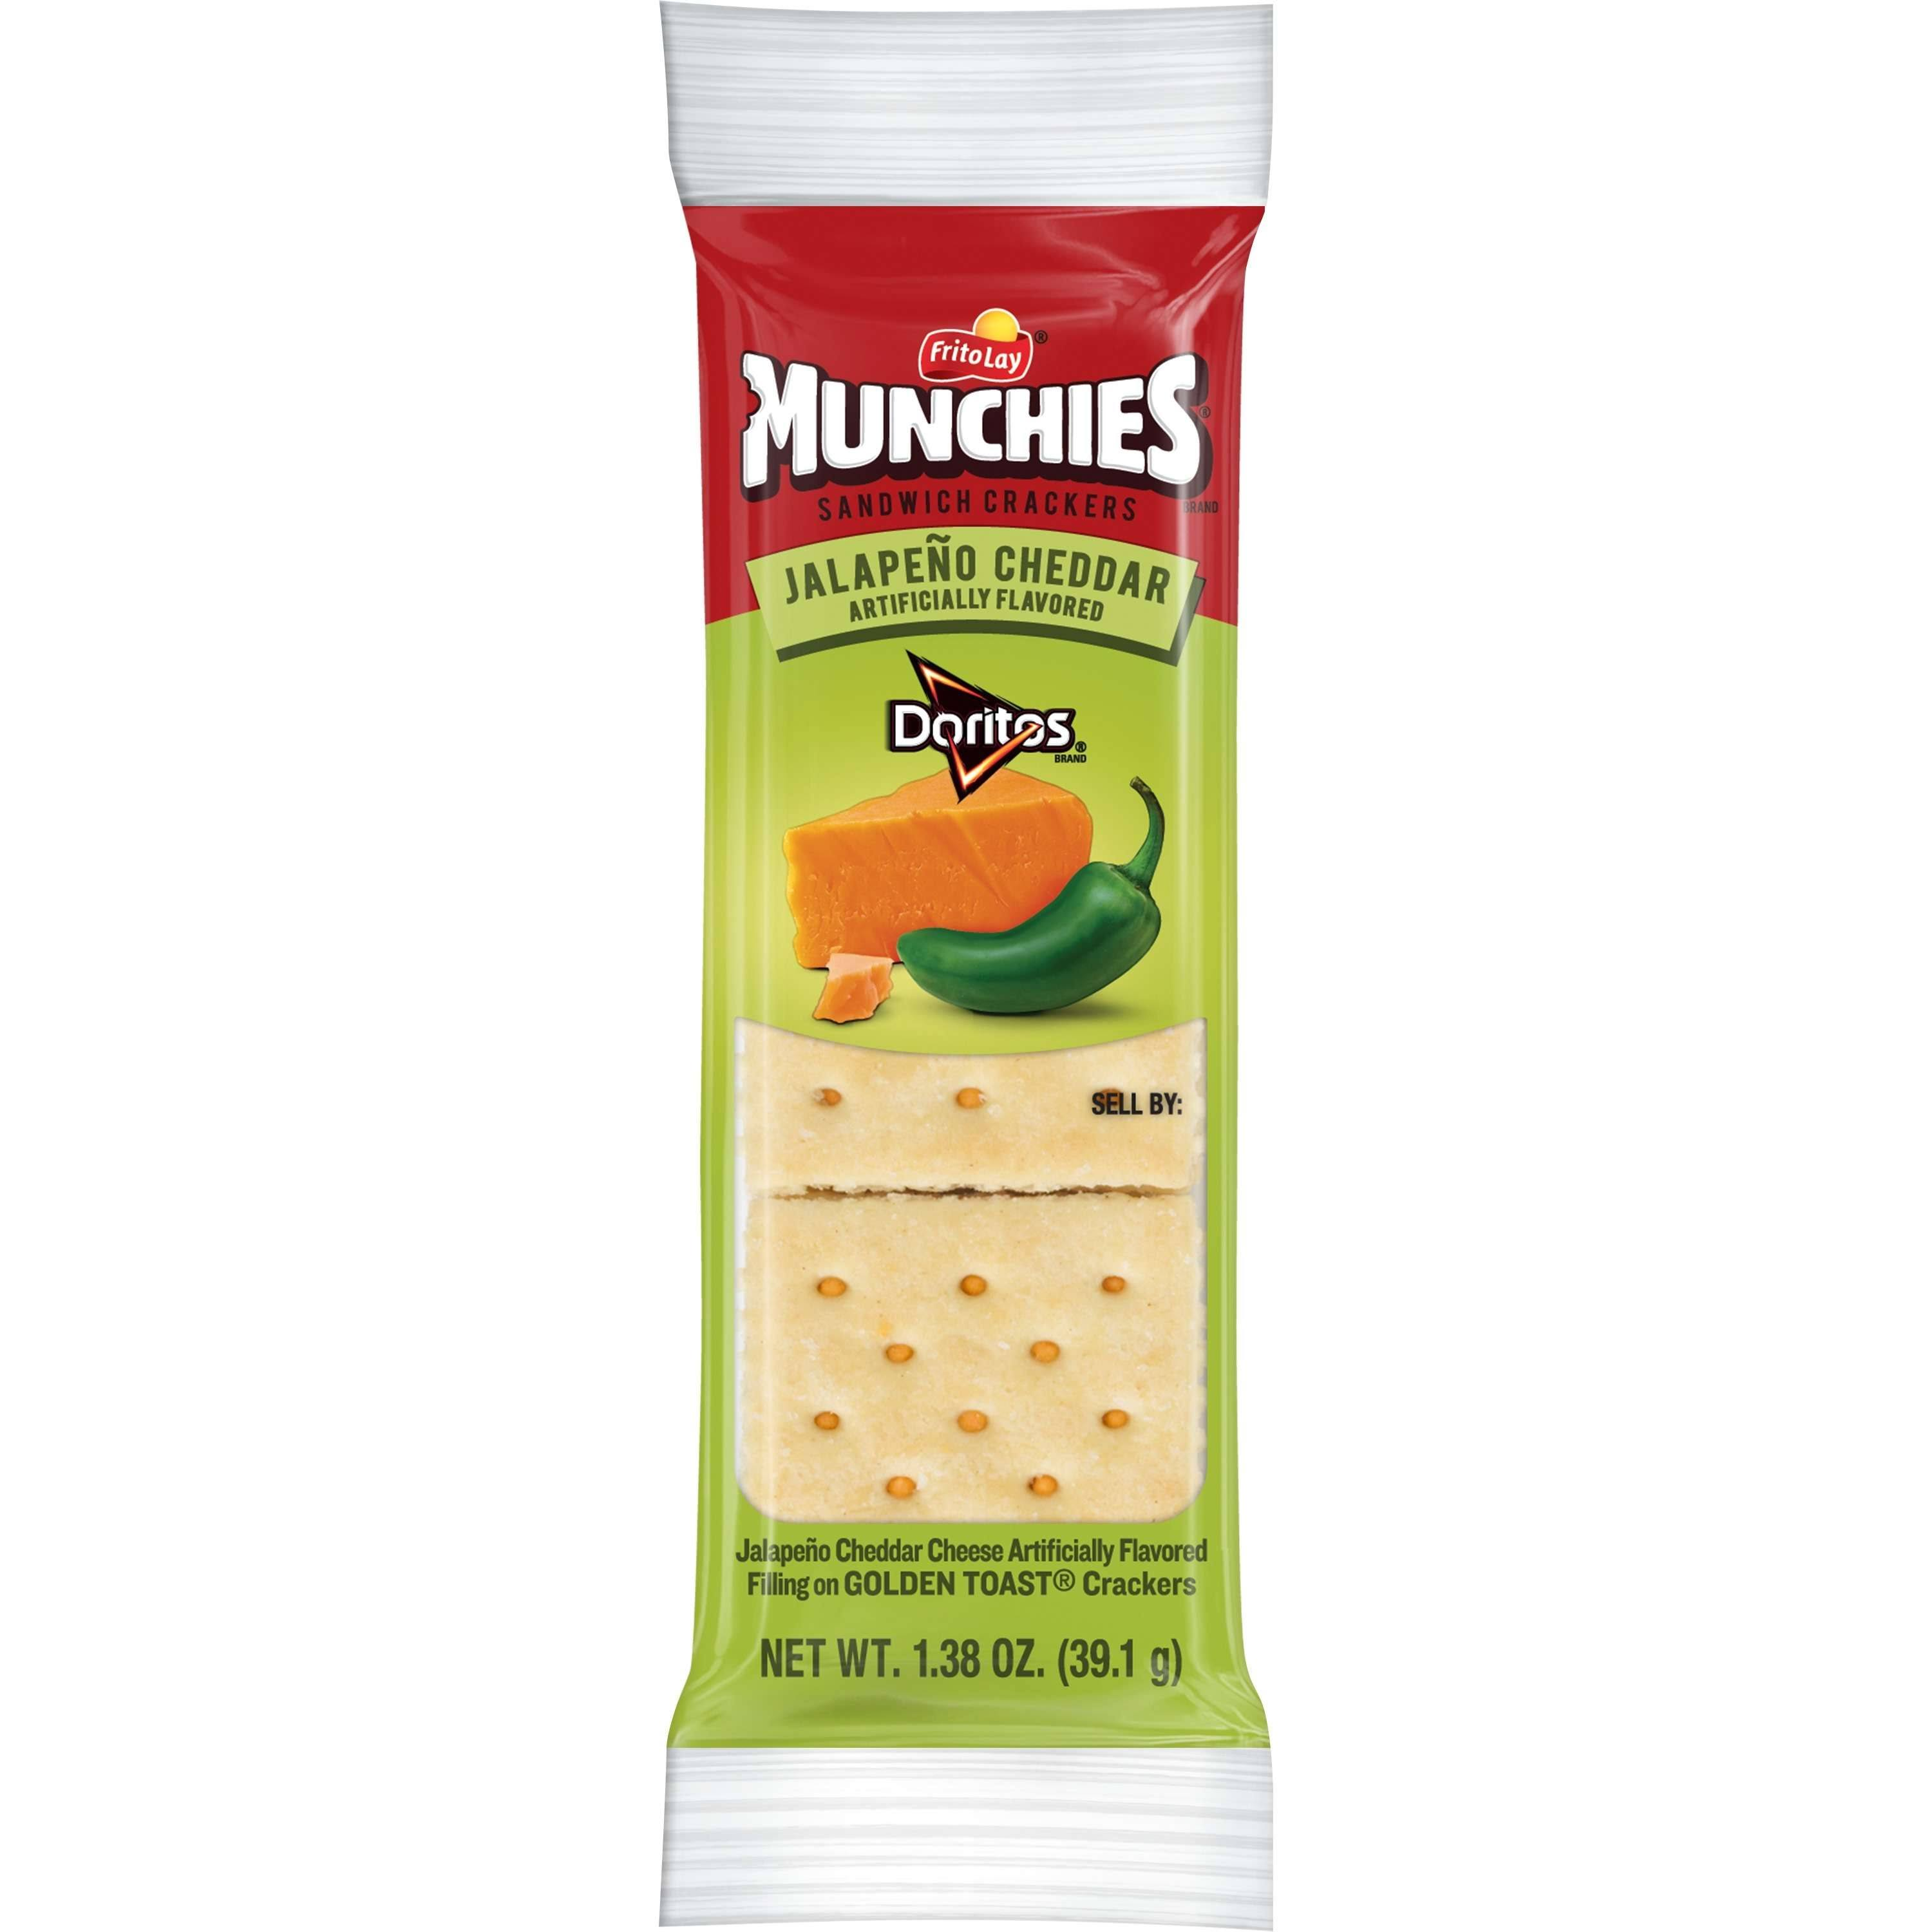 Munchies Sandwich Crackers, Jalapeno Cheddar - 1.38 oz